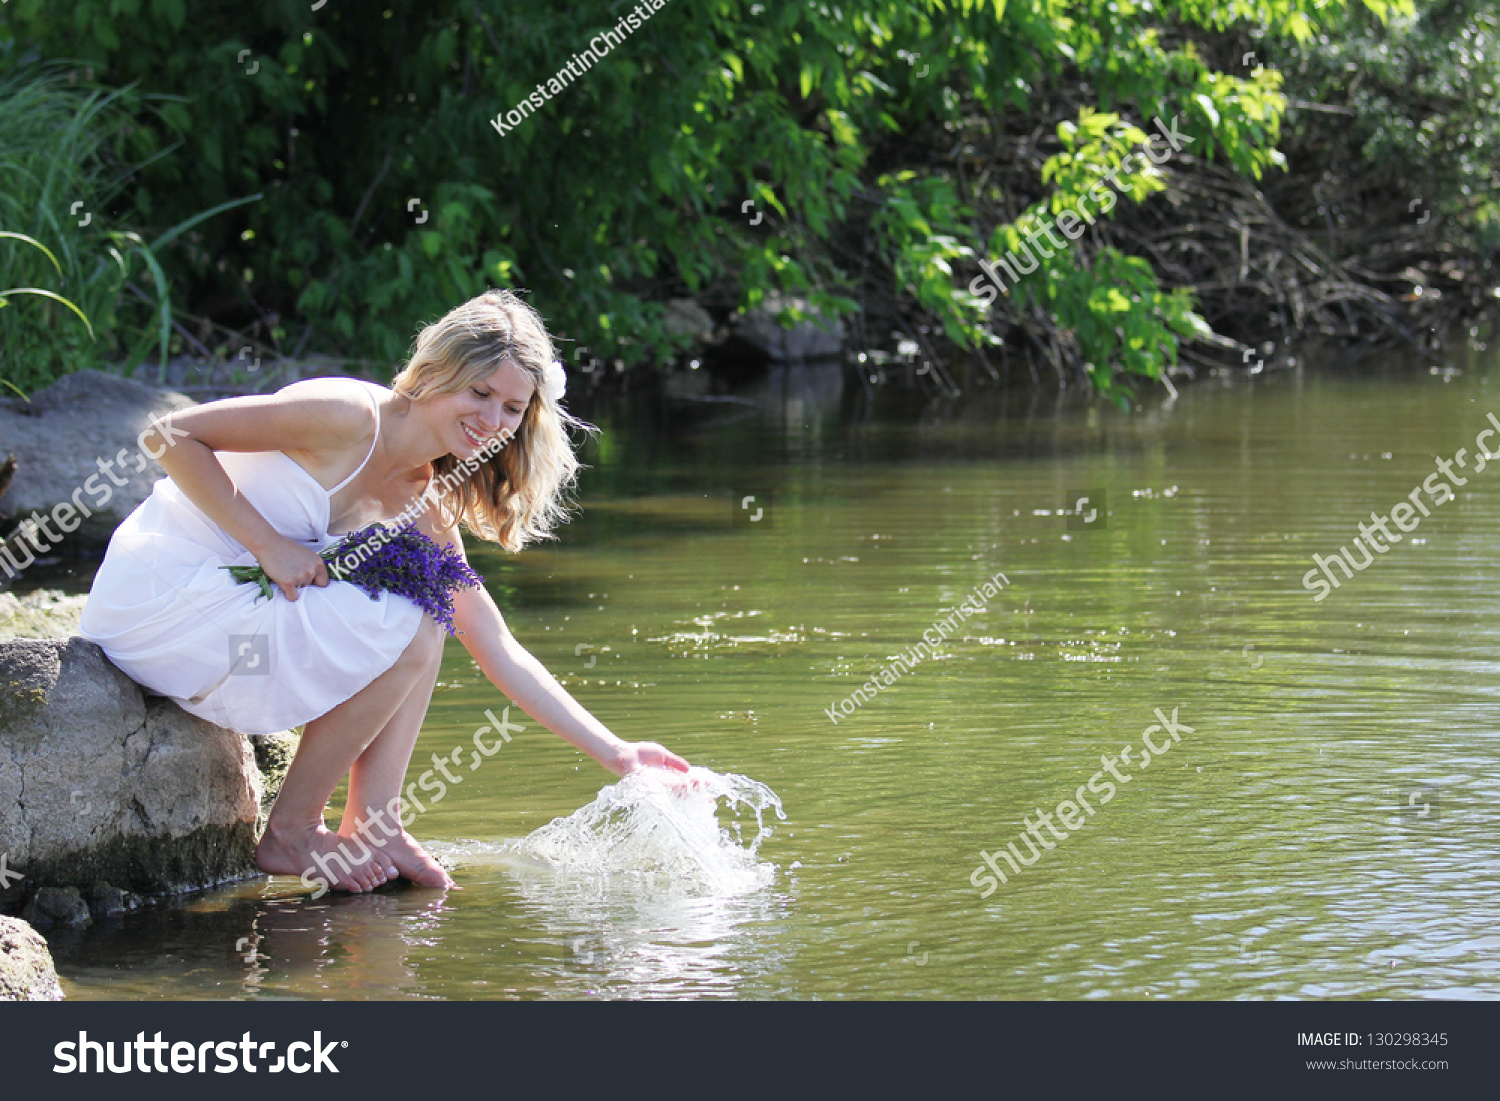 Young Girl Squirting Water Lake Stock Photo 130298345 -2212